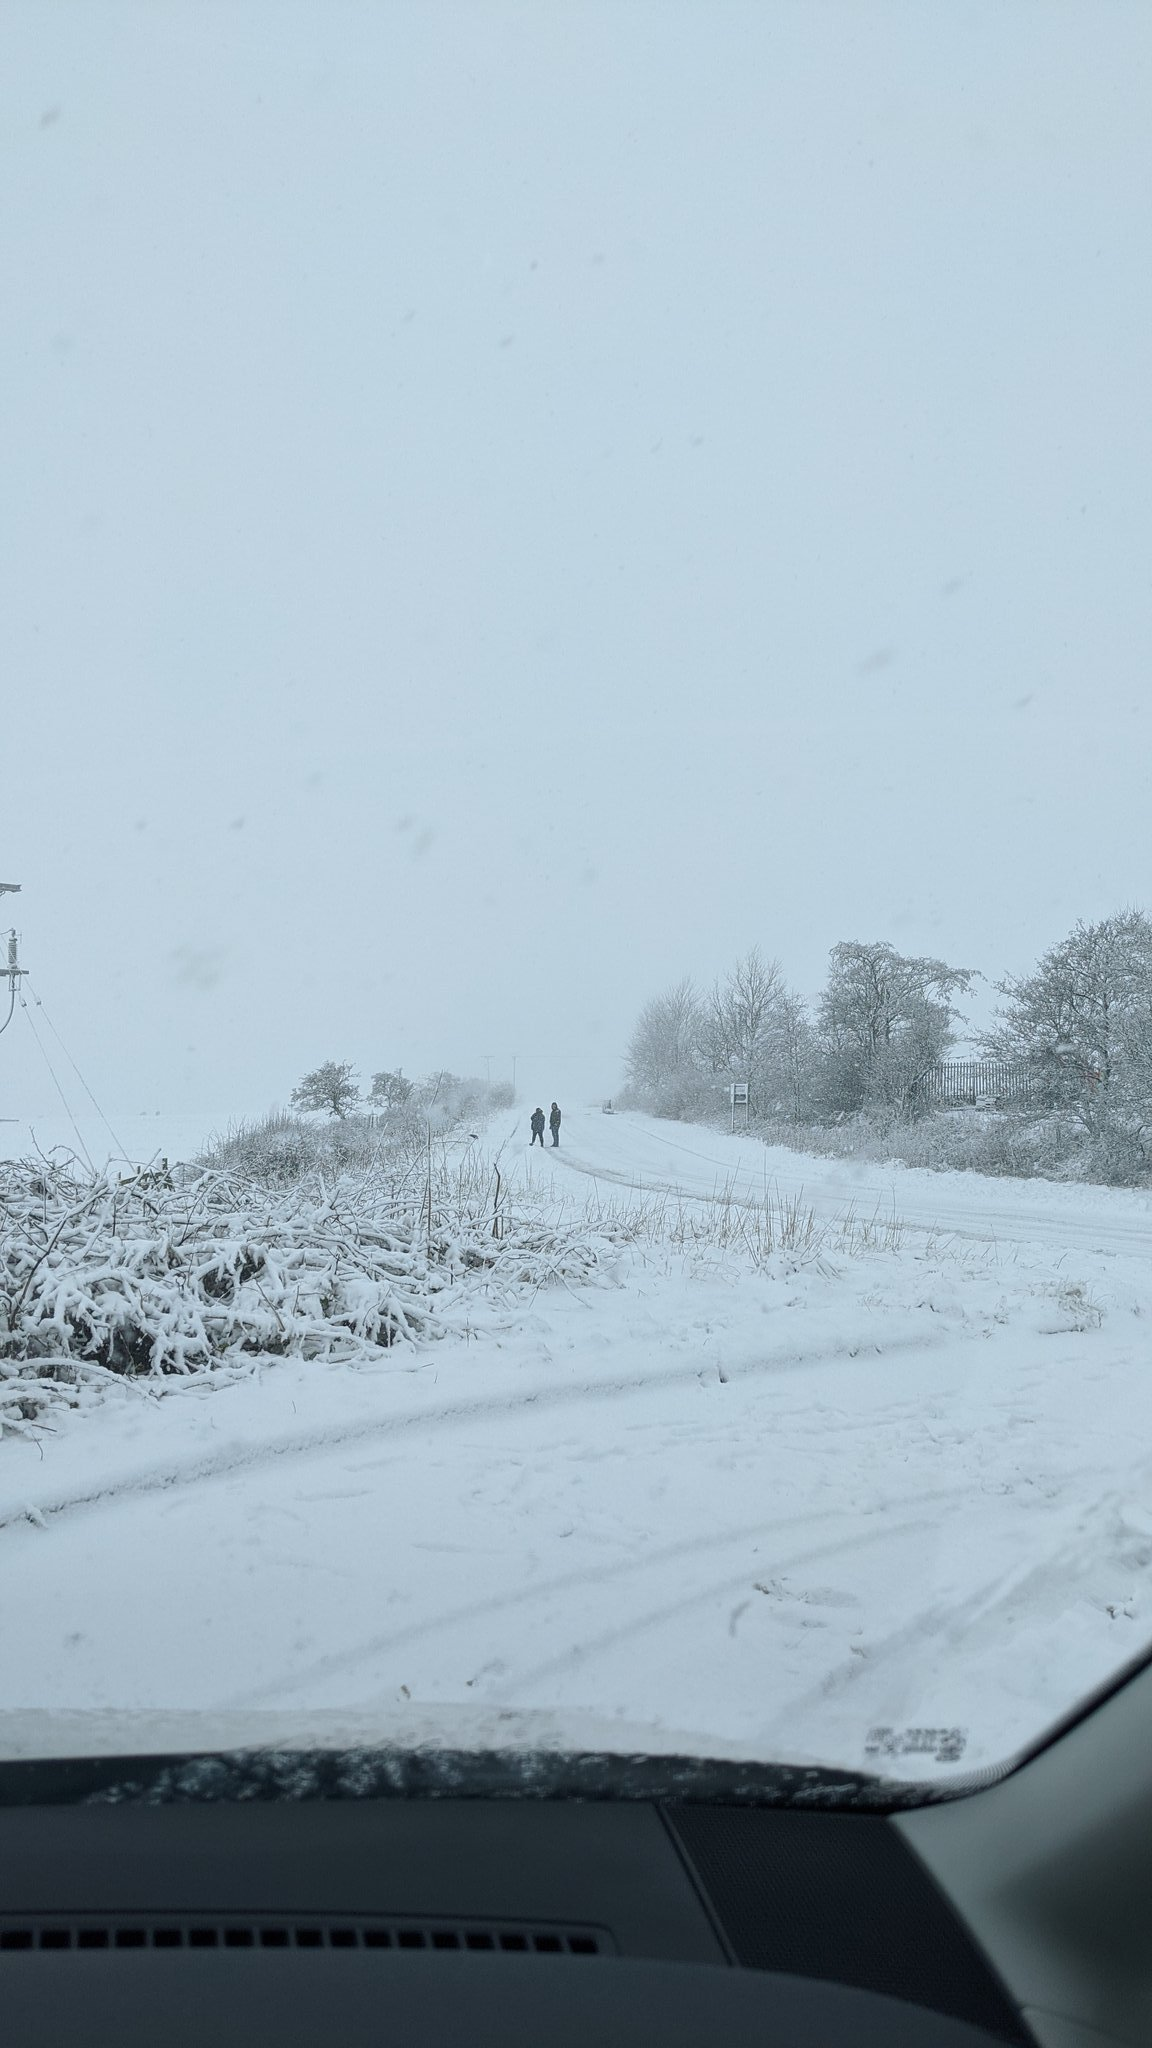 Scenes like this will likely greet a fair few Monday morning across parts of County Durham/Northumberland...  This was on the 13th with no weather warning in place.  Tow Law - County Durham https://t.co/nZ2JhjpO2H